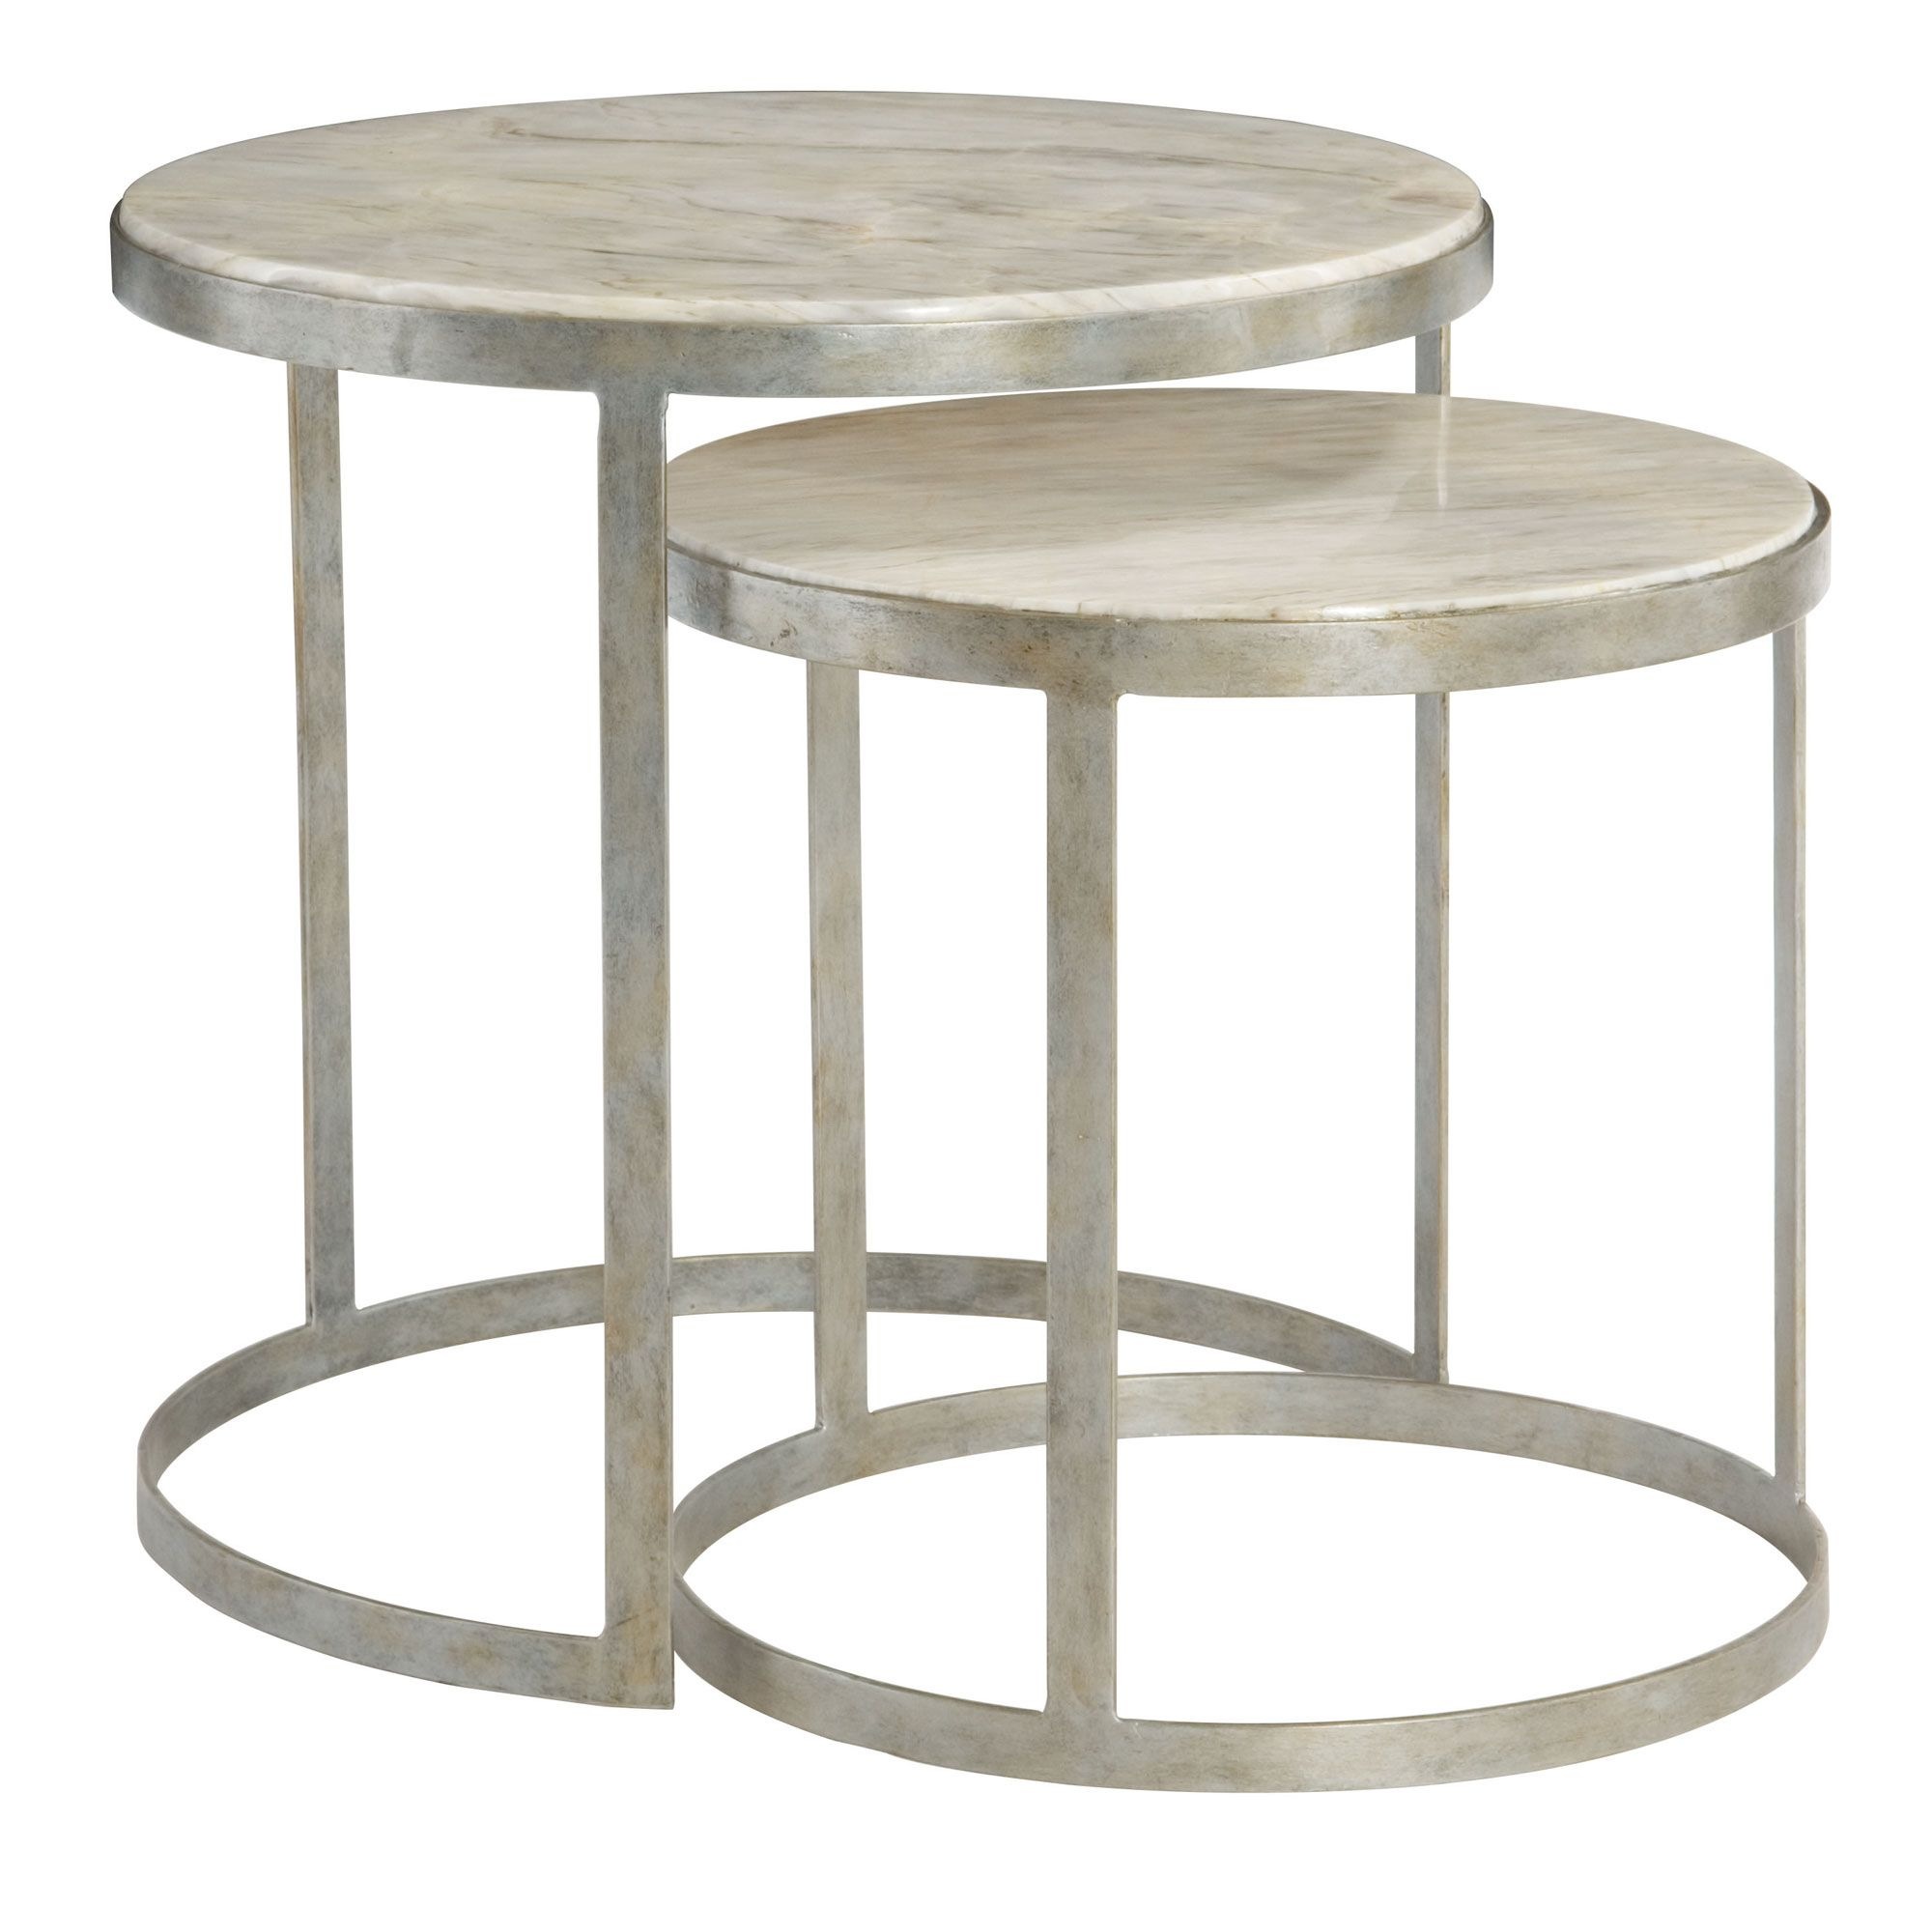 362-031 Tiffin Nesting Tables | Bernhardt Round Dia 24.5 H 24 Century Marble  Top #LightFinish $1665 #2Foot